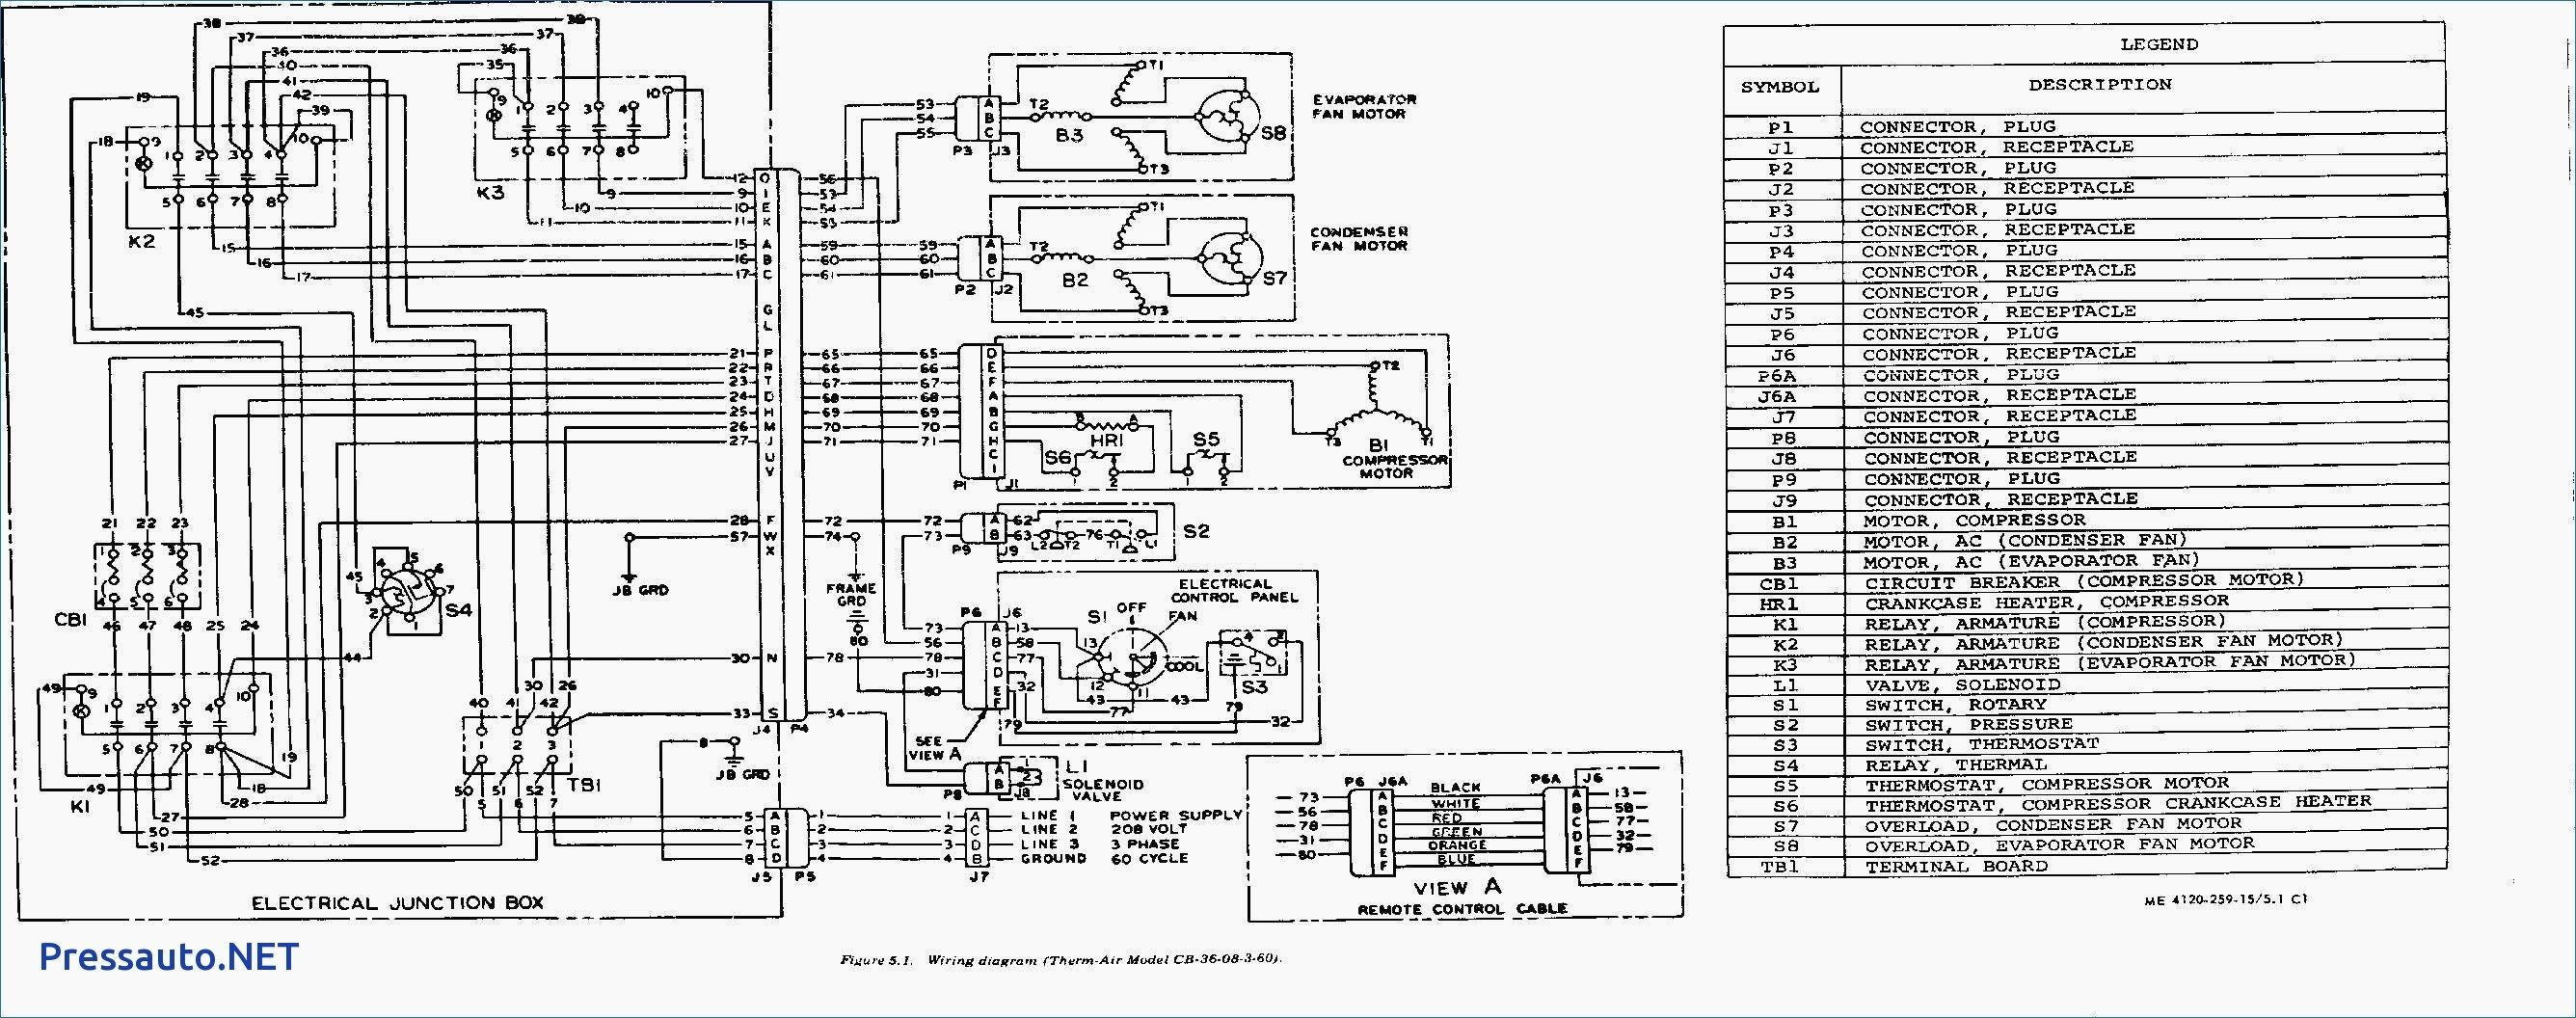 medium resolution of trane air conditioning schematics wiring diagram for you trane schematics diagrams